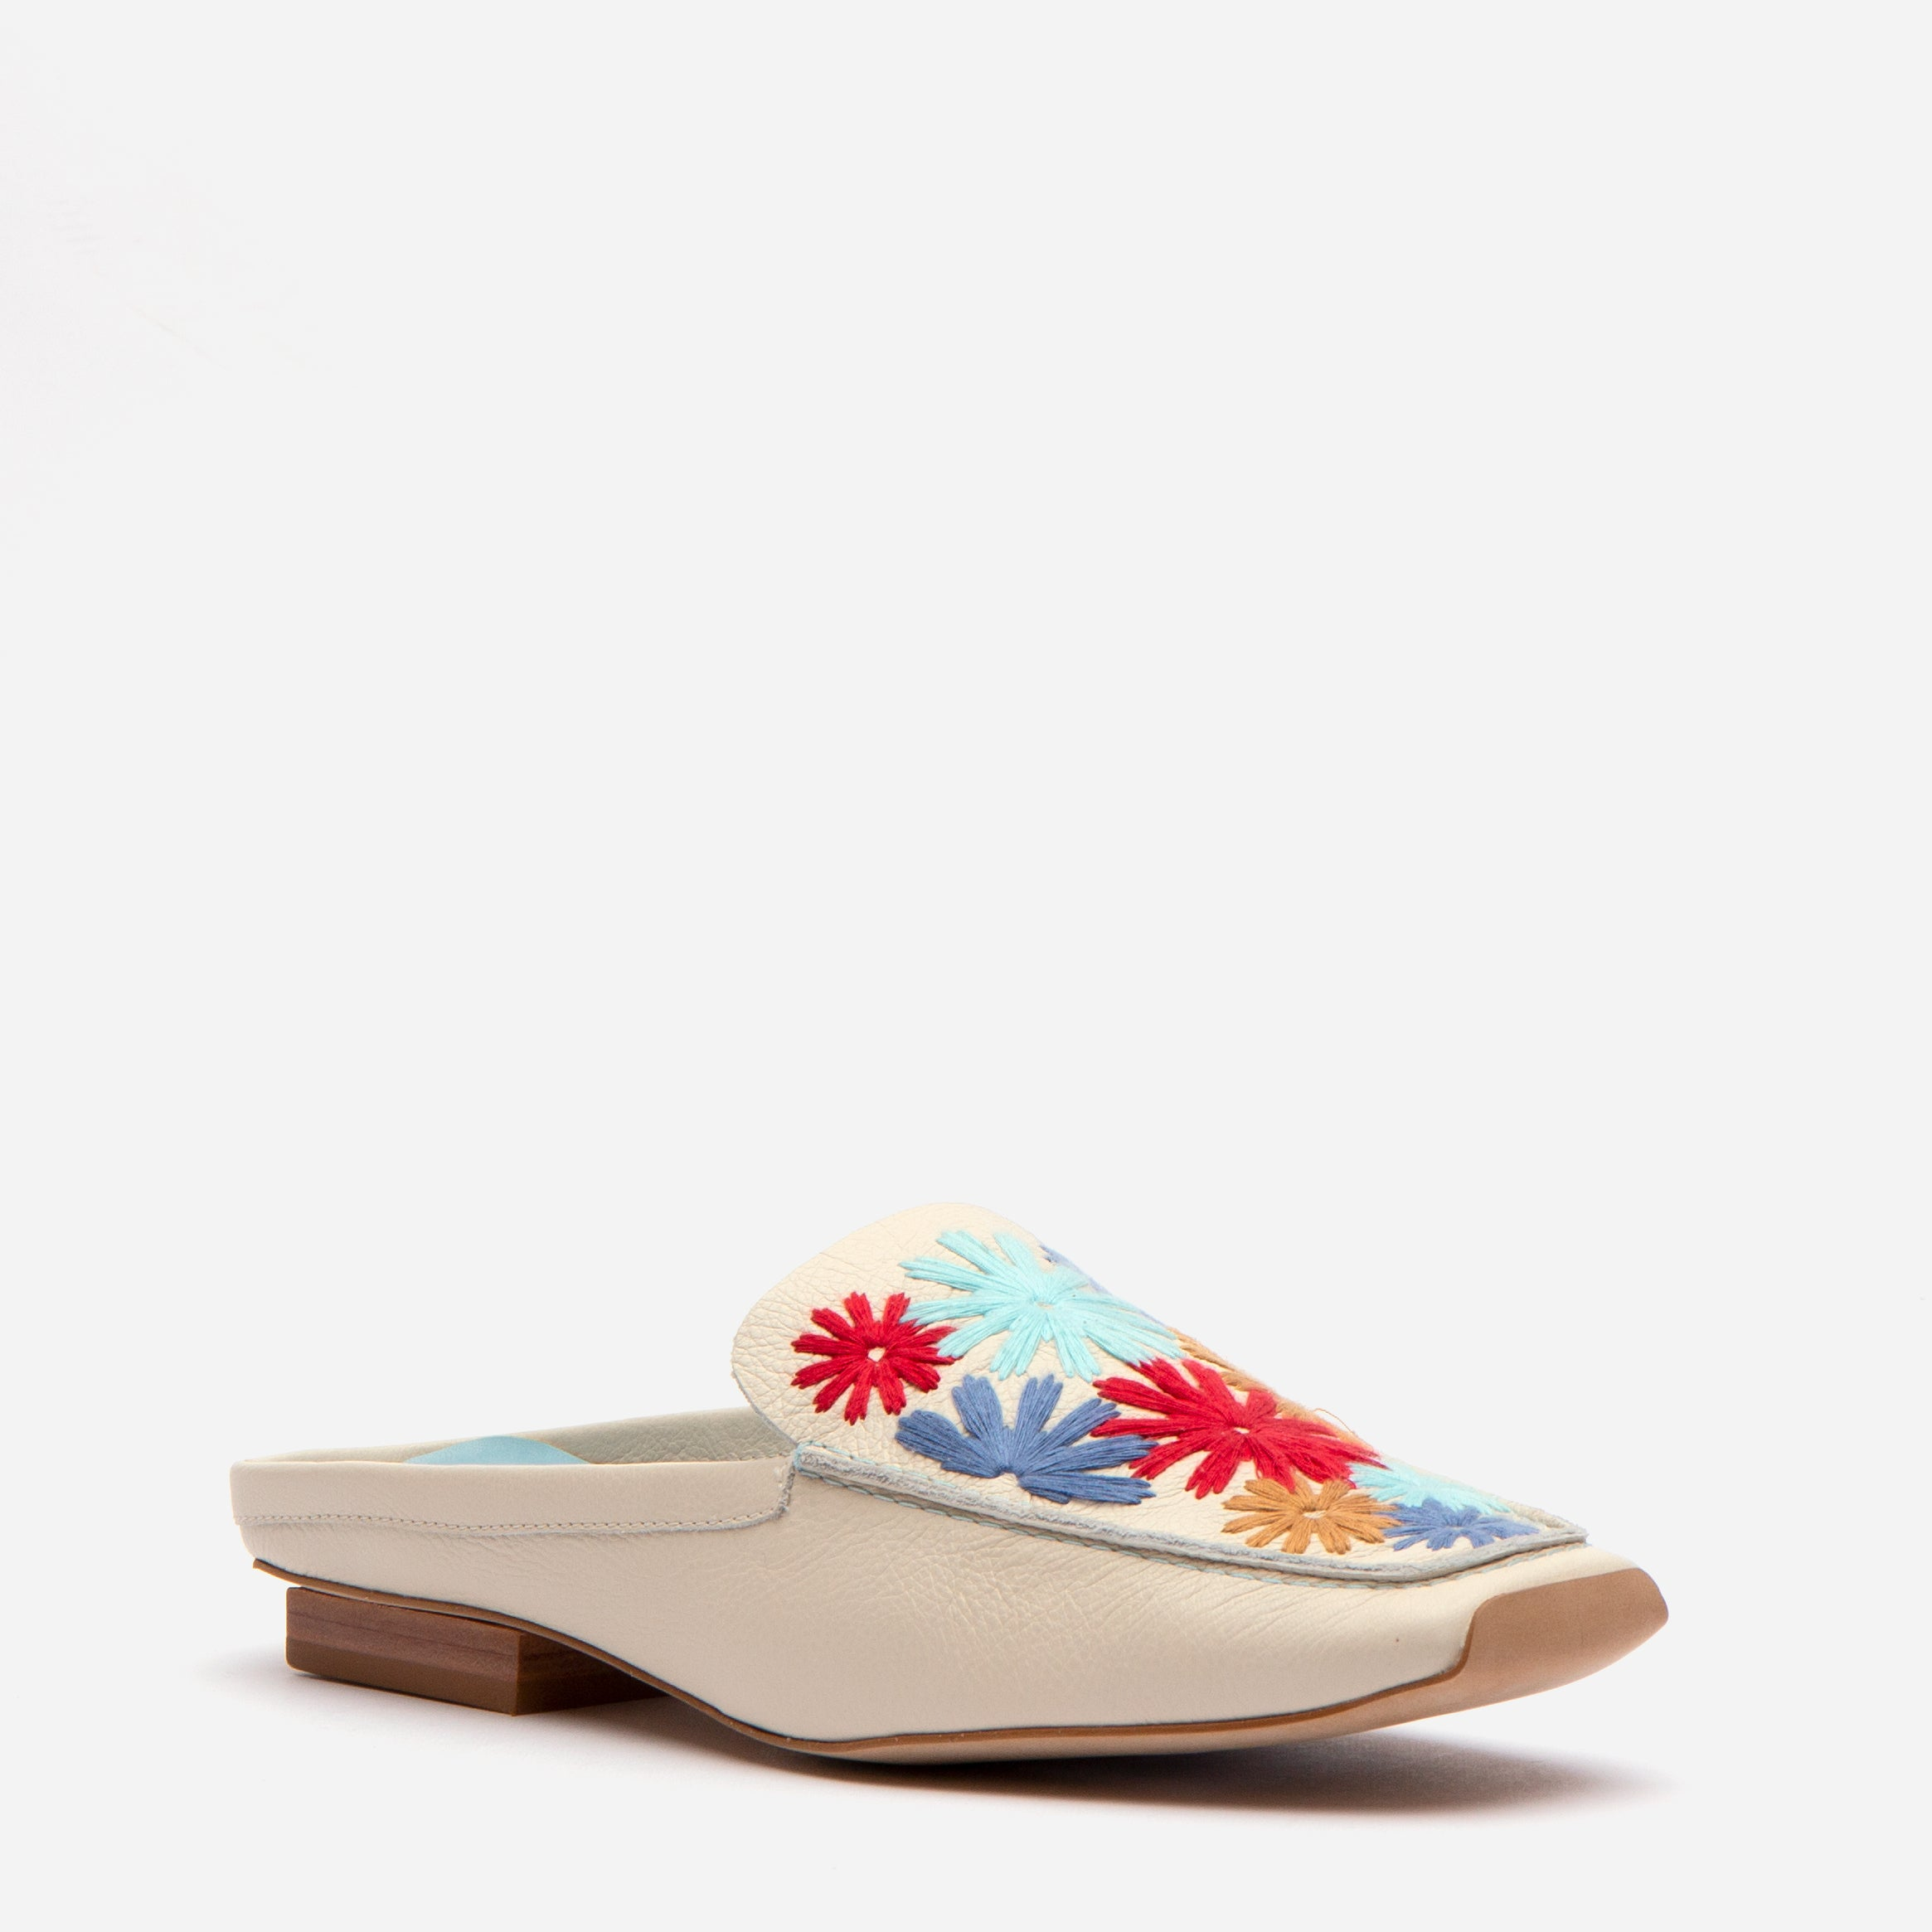 Elyce Mules Floral Embroidery Oyster